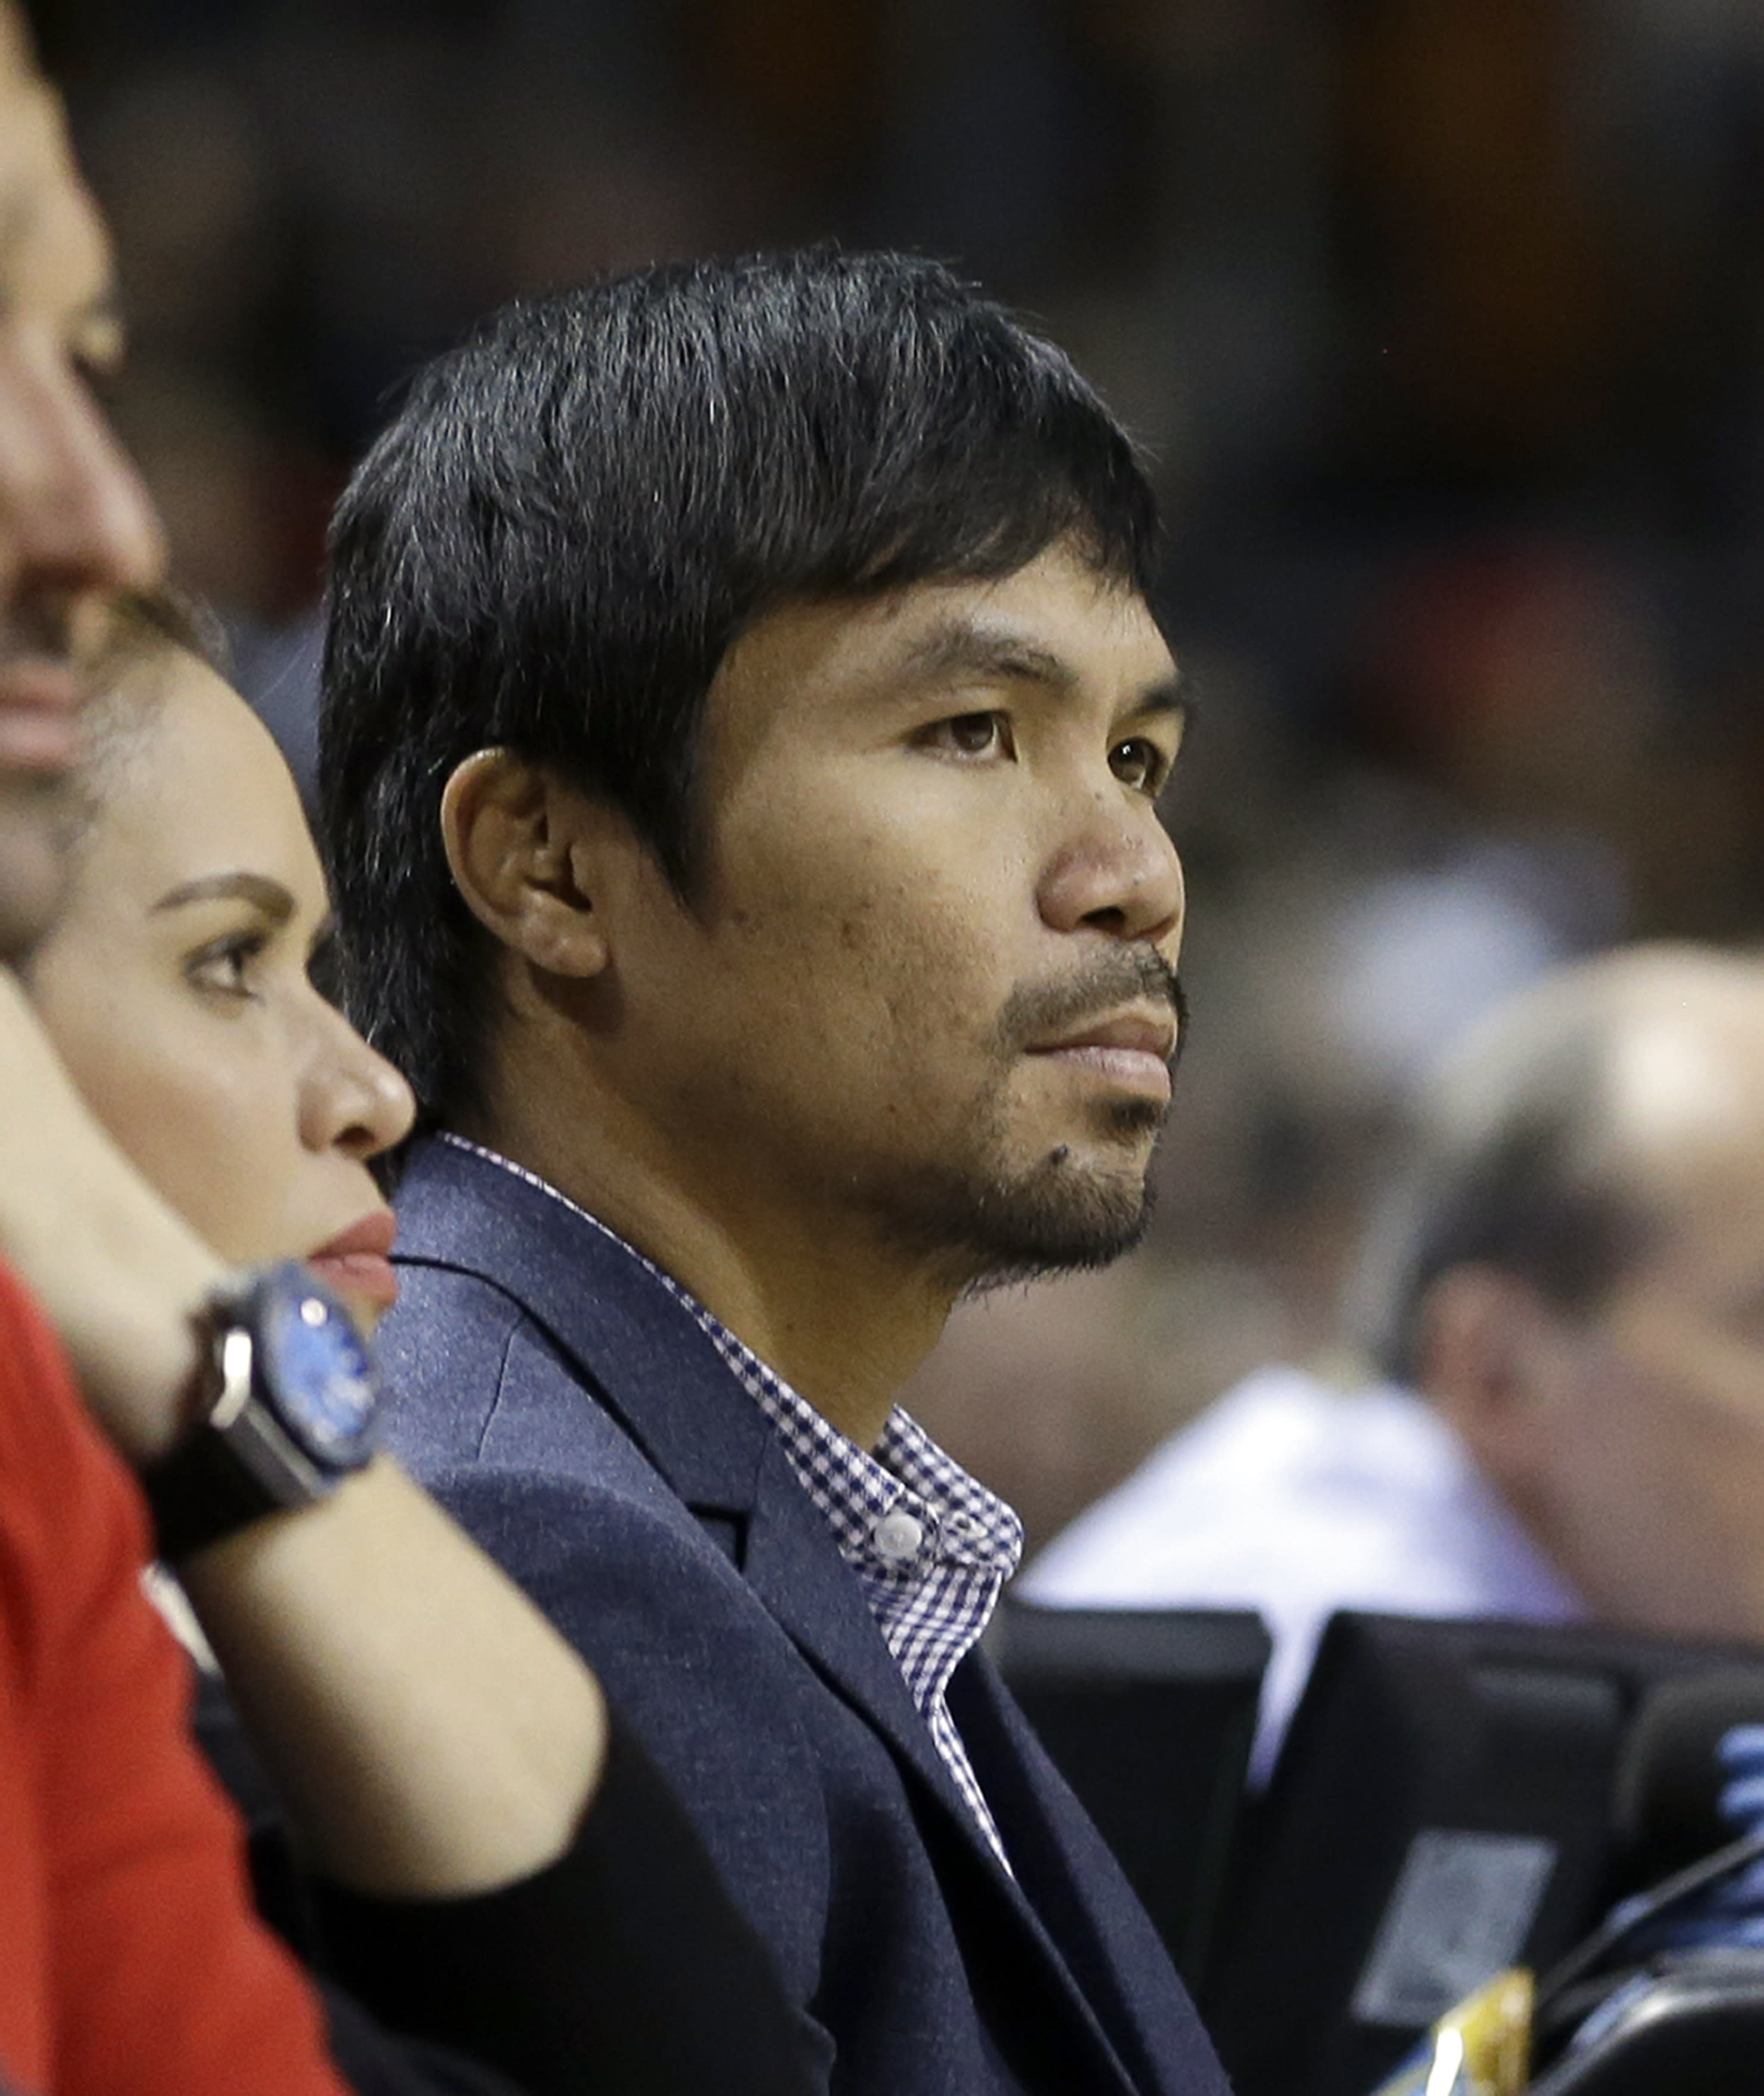 Mayweather and Pacquiao exchange phone numbers at Heat game